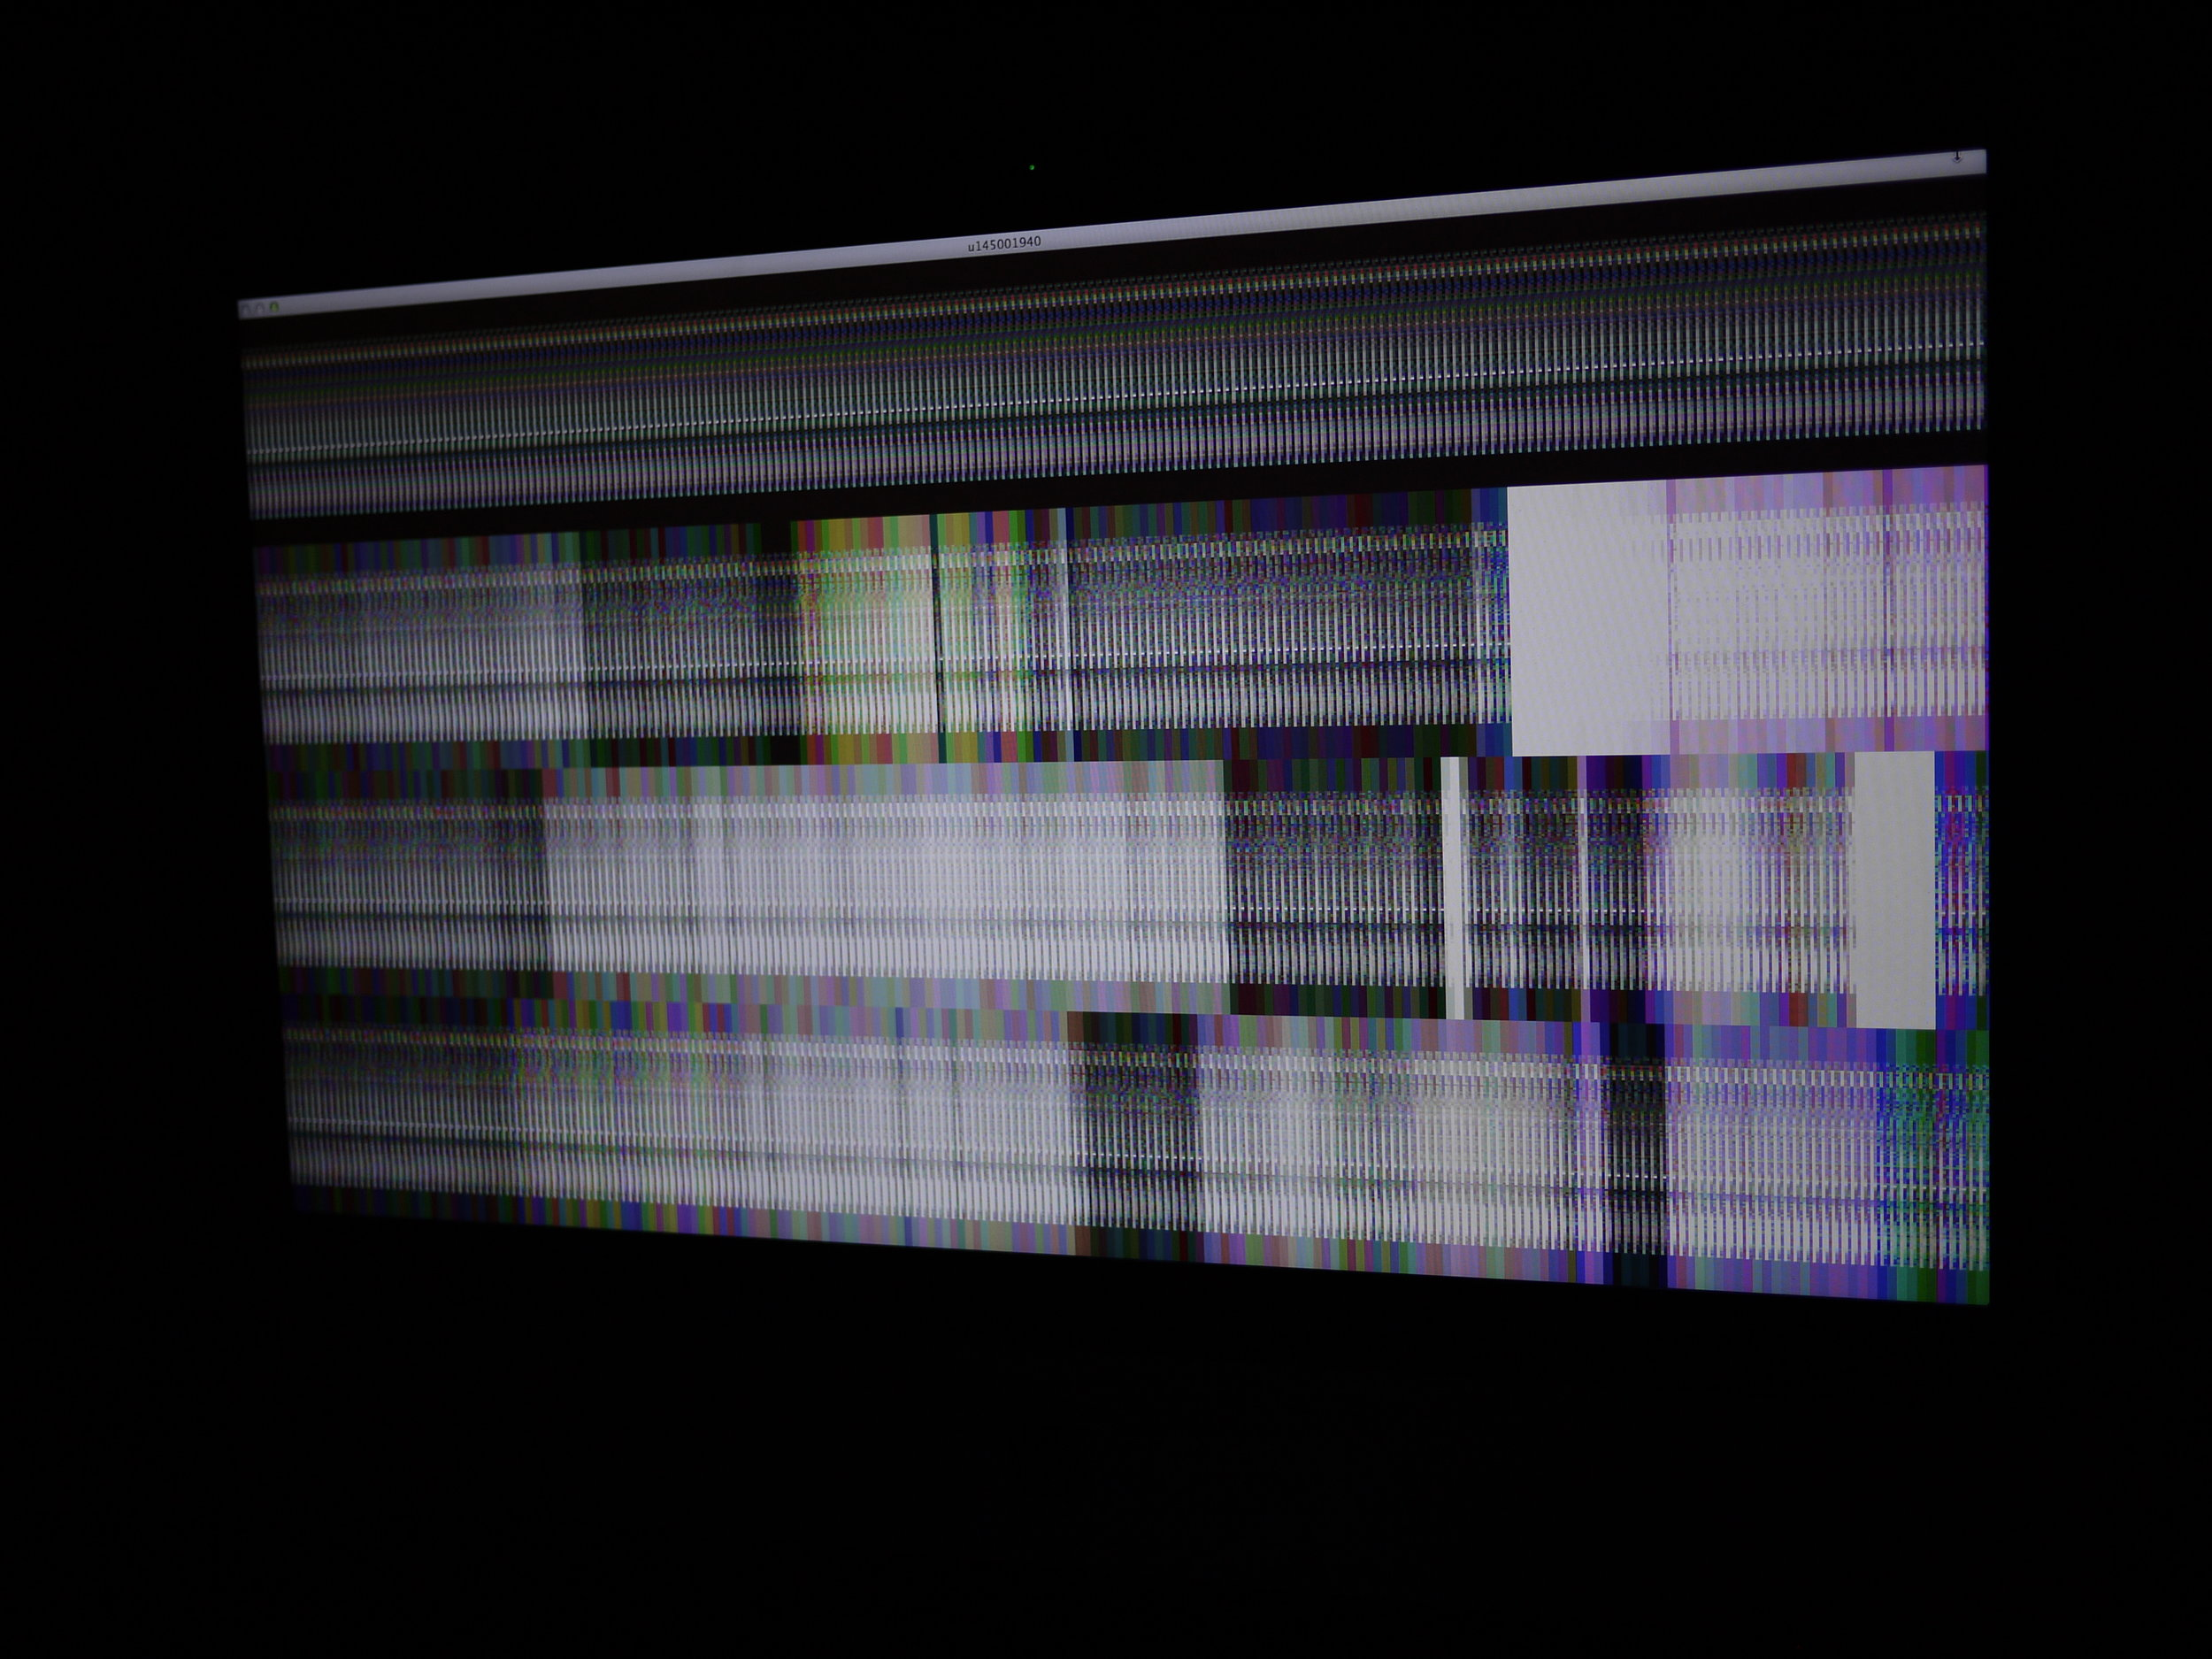 Relapse   Róisín Berg, Walter Nied 2017 | Ireland | Mixed Media This mixed-media art installation presents viewers with projections of their past selves juxtaposed with screendance in an unnerving audio/visual environment. This work ponders the fragility of privacy in today's technologically engulfed world and highlights the connectivity between everyday motion and dance on film.